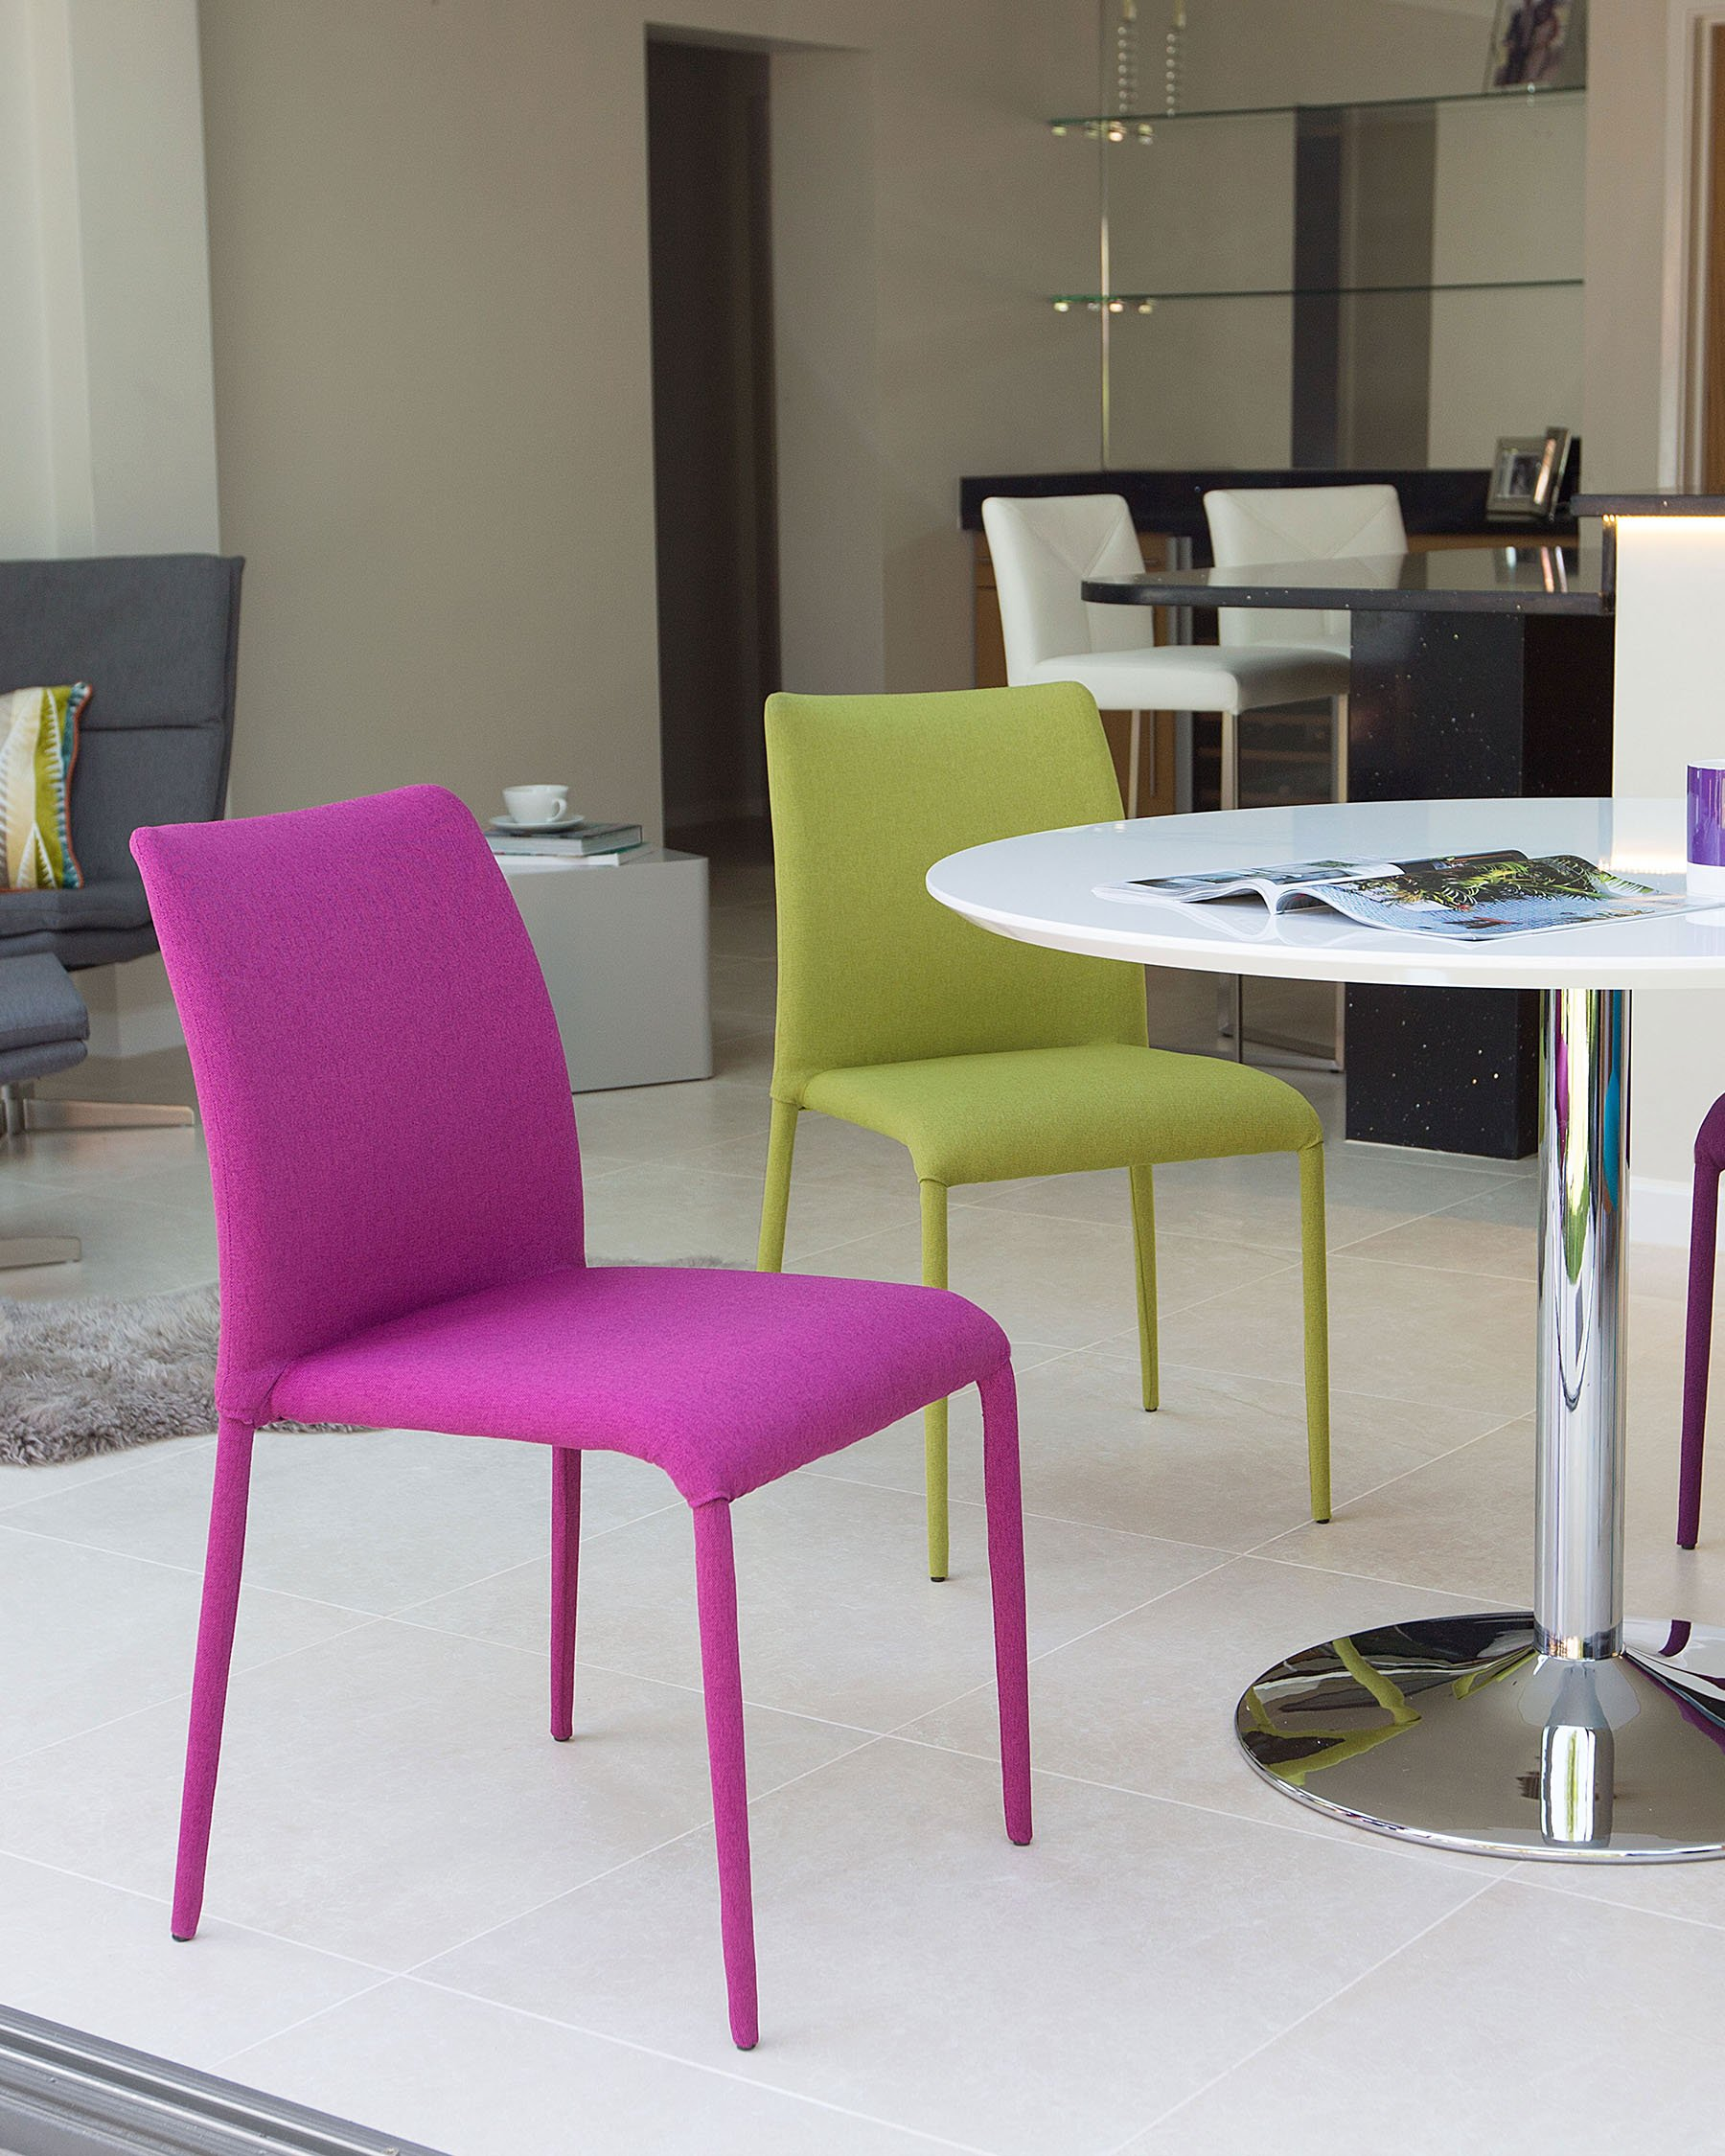 Stackable Dining Chairs Space Saving, Fuchsia Dining Room Chairs